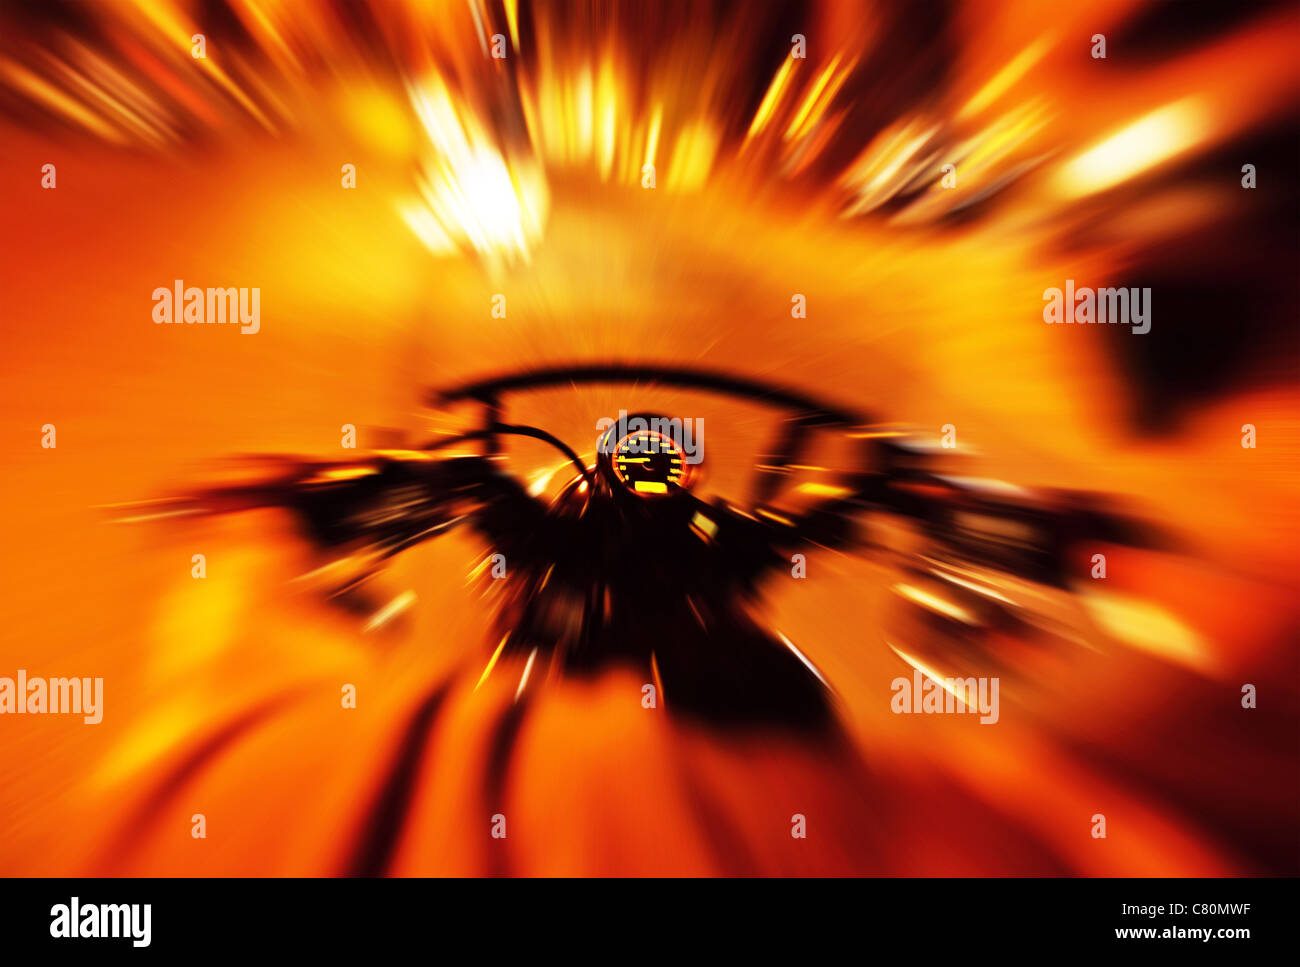 Abstract red slow motion speed background, selective focus on speedometer, night motorbike ride - Stock Image